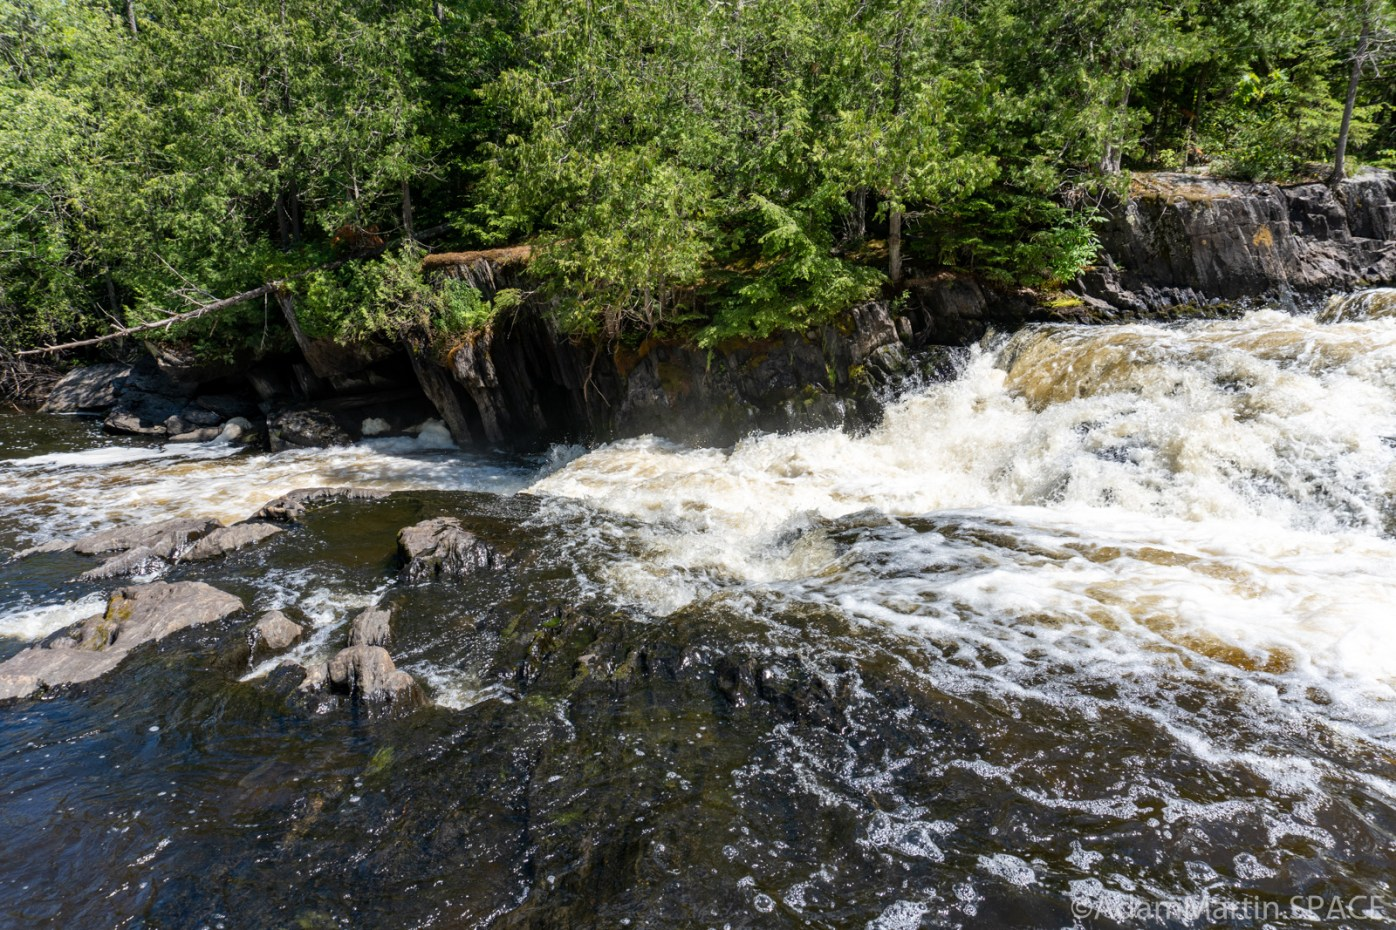 Breakwater Falls - Multiple drops